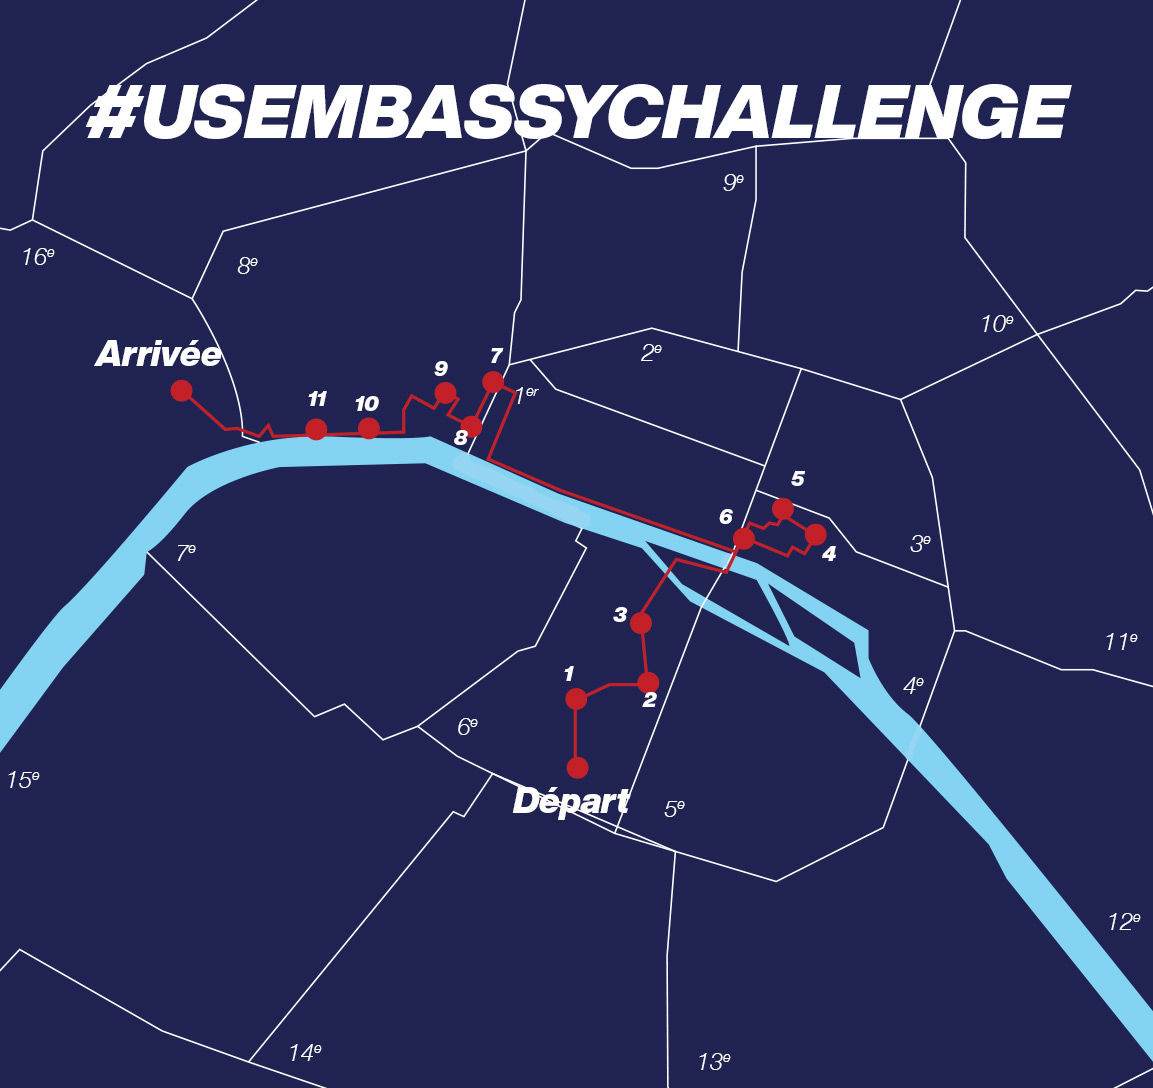 parcours #USEMBASSYCHALLENGE